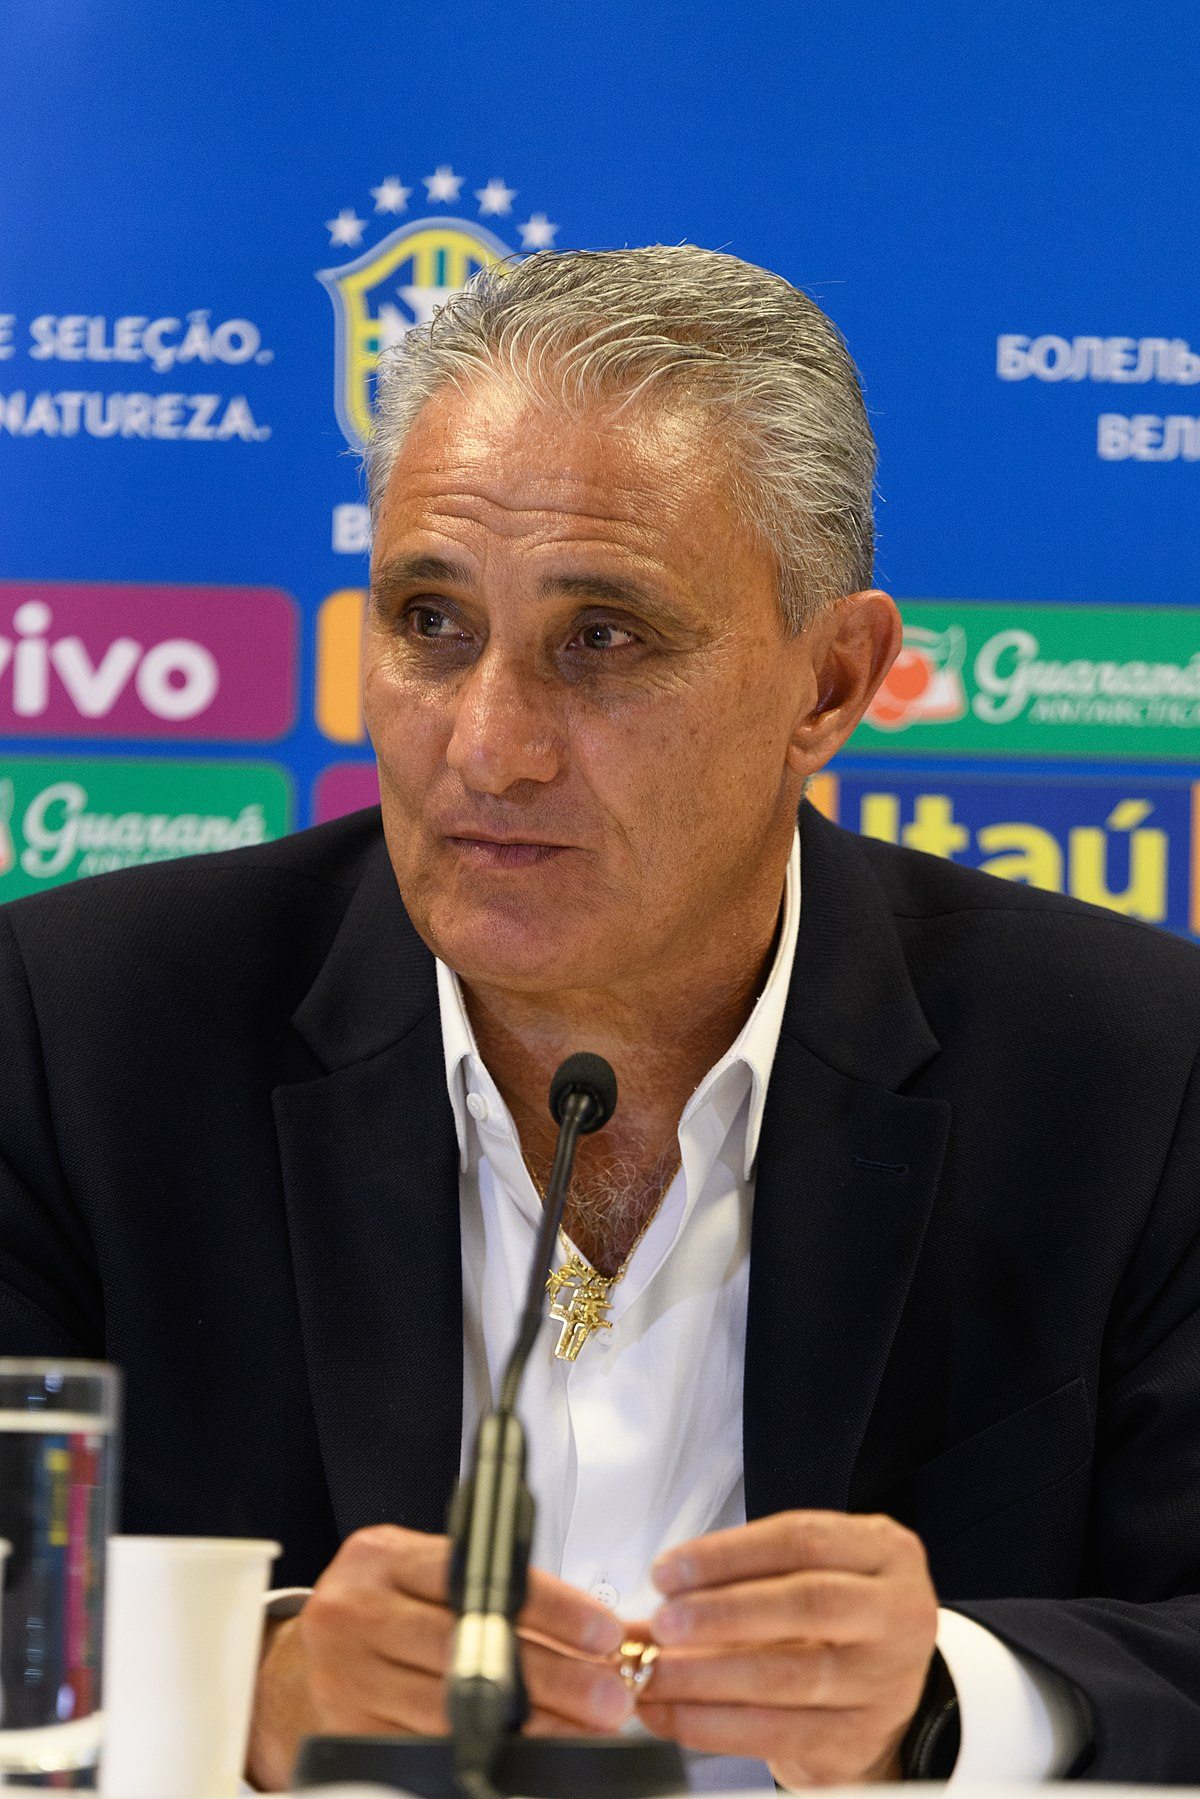 Tite (football manager) - Wikipedia